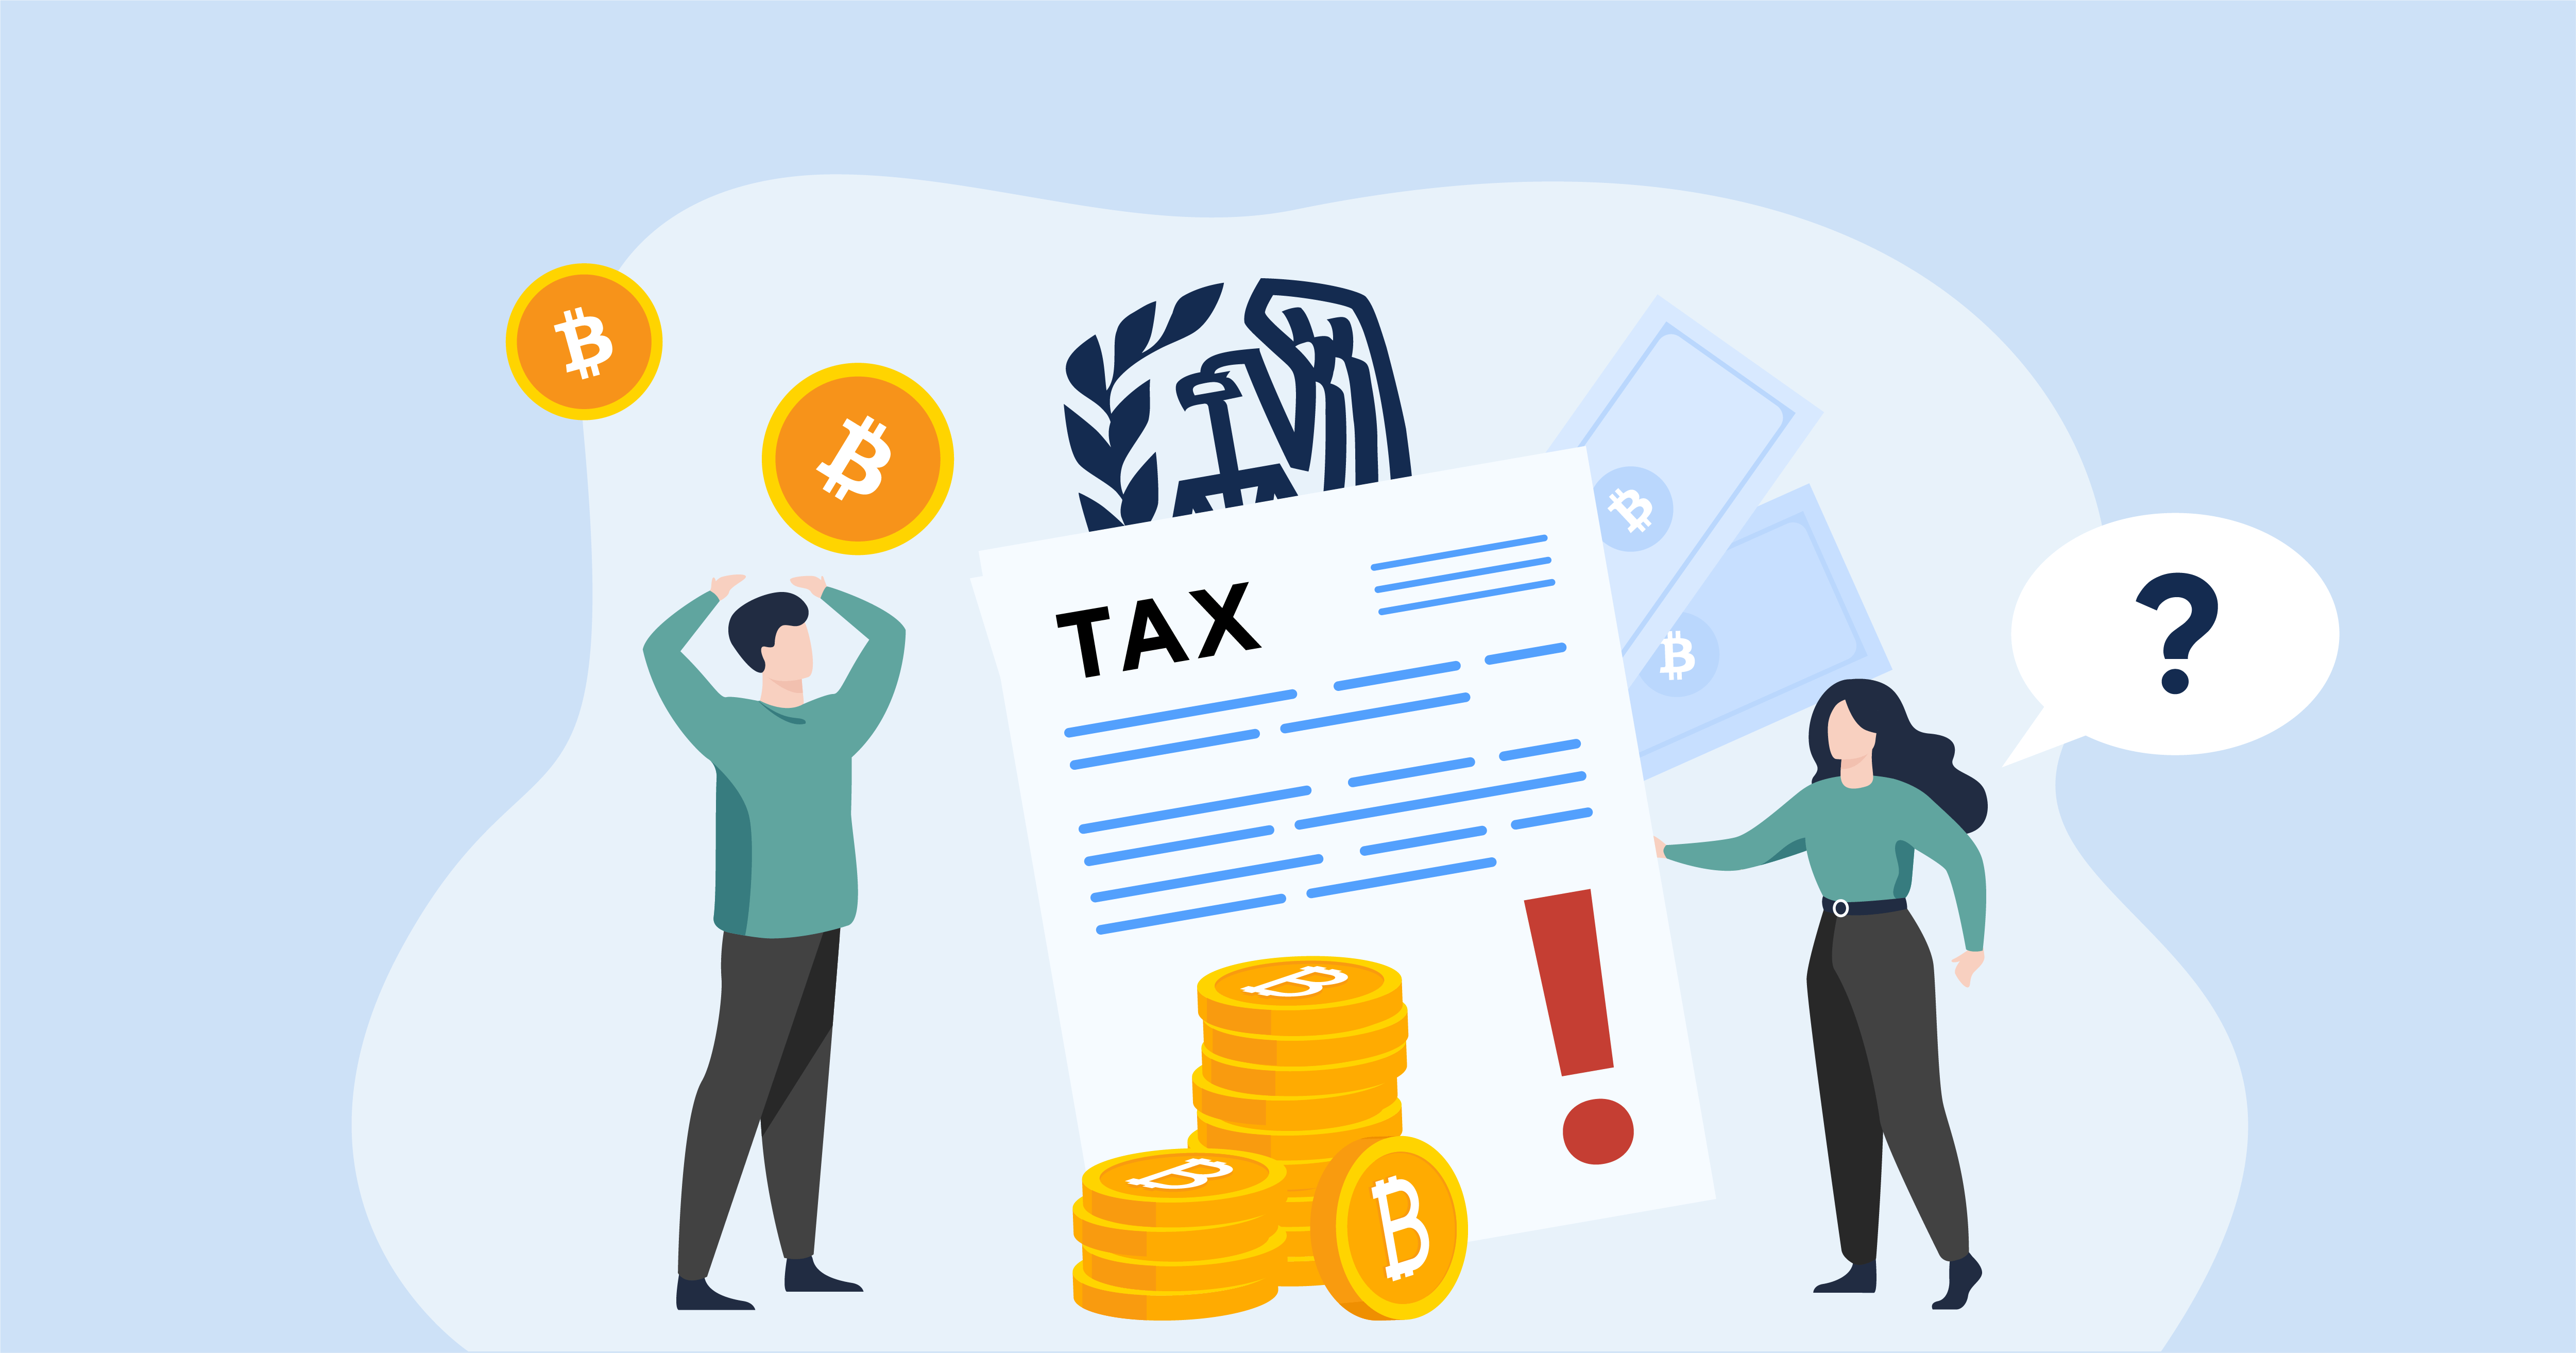 Over 150 Million Americans Must Report Crypto on Taxes With IRS Update